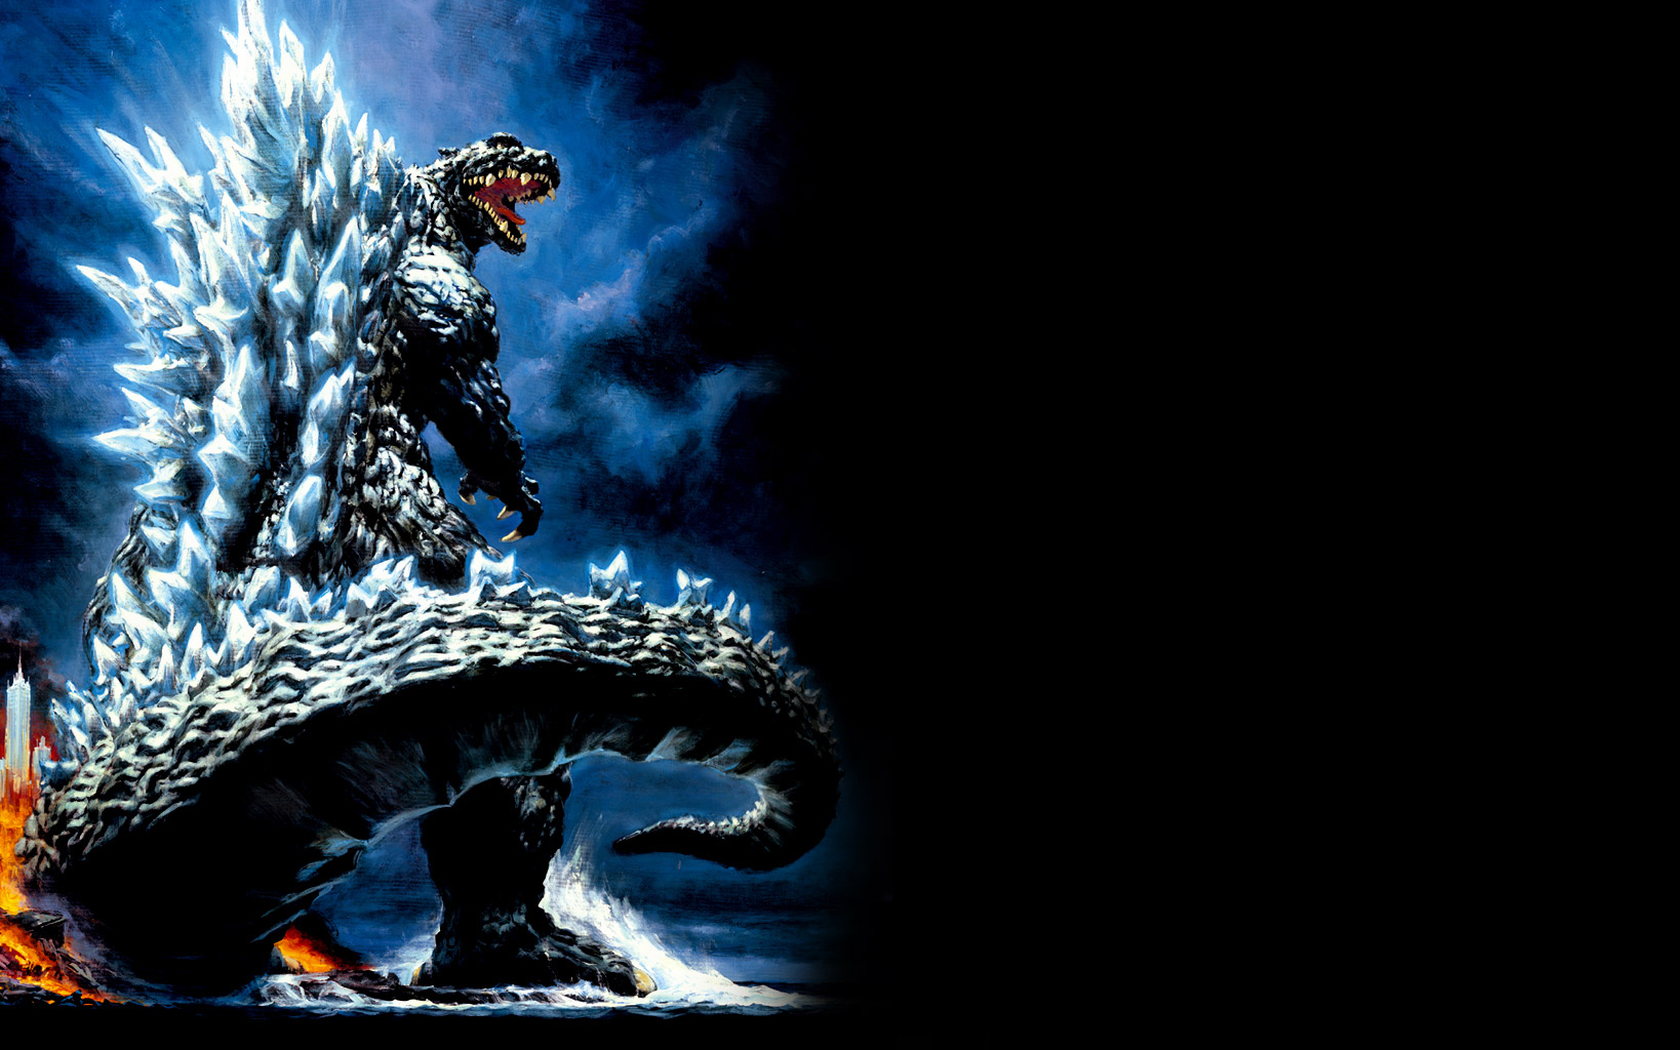 Wallpaper Abyss Explore the Collection Godzilla Sci Fi Godzilla 199168 1680x1050